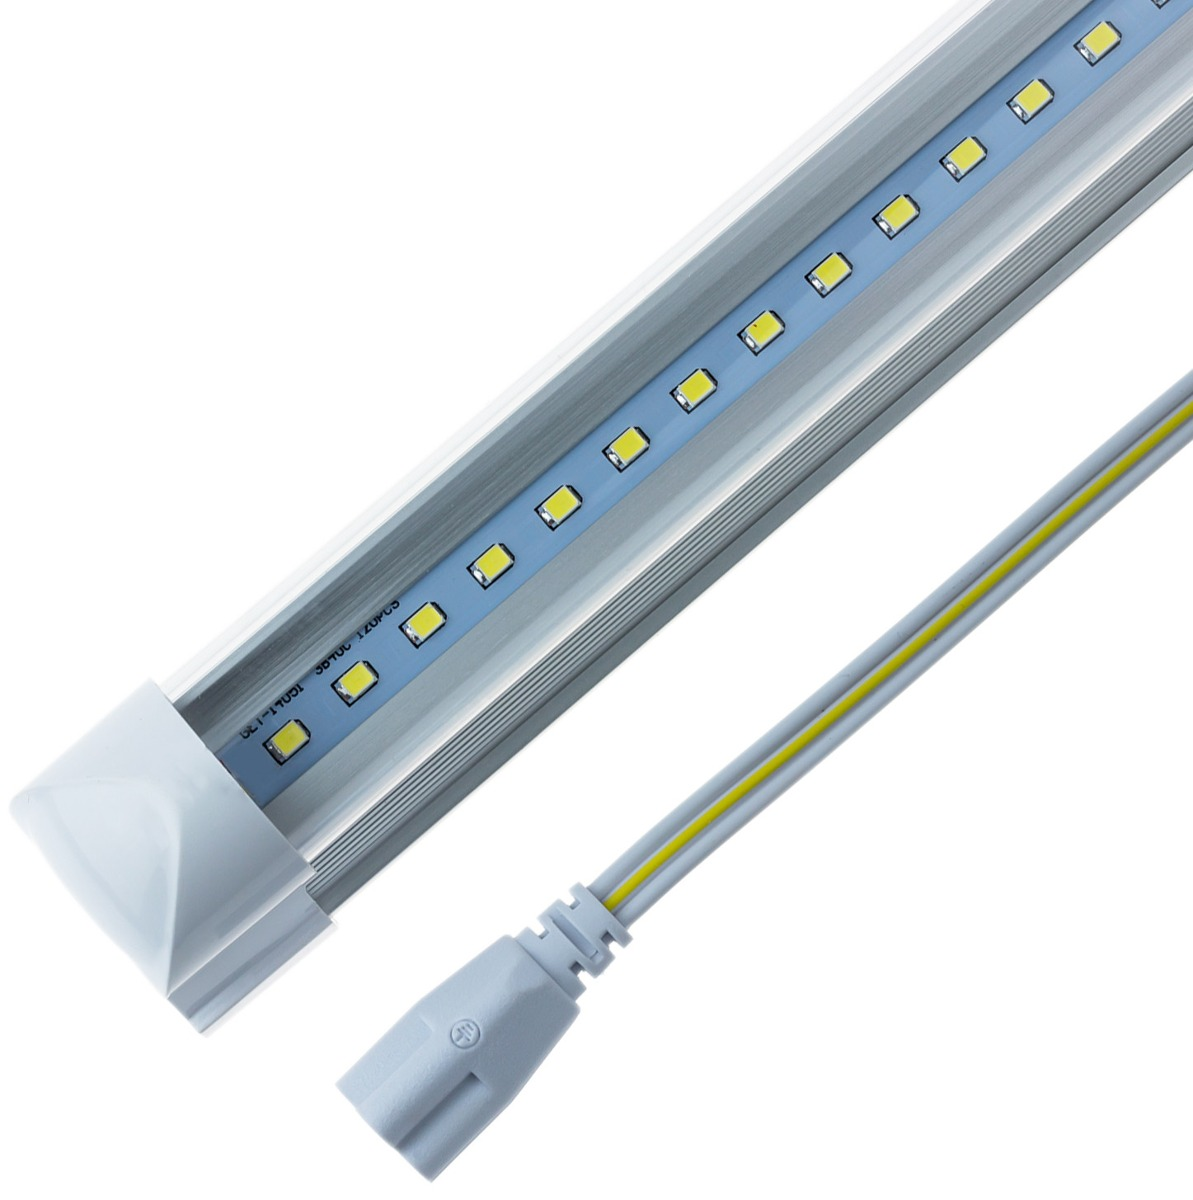 Lampara led t8 18w transparente luz blanca con base b42618 for Lamparas led para jardin